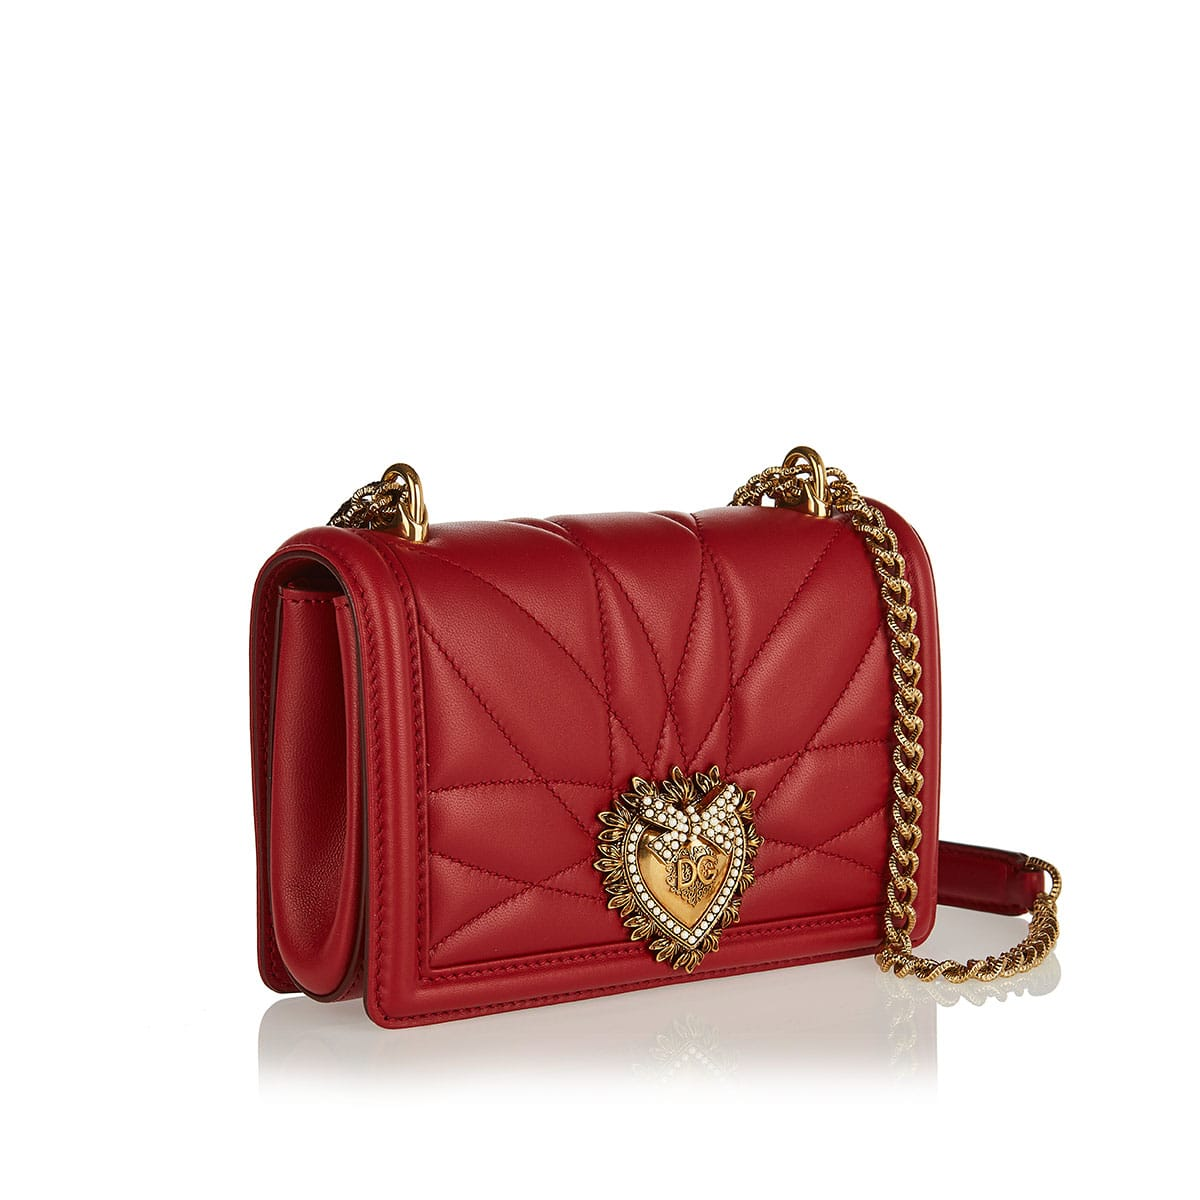 Devotion mini shoulder bag